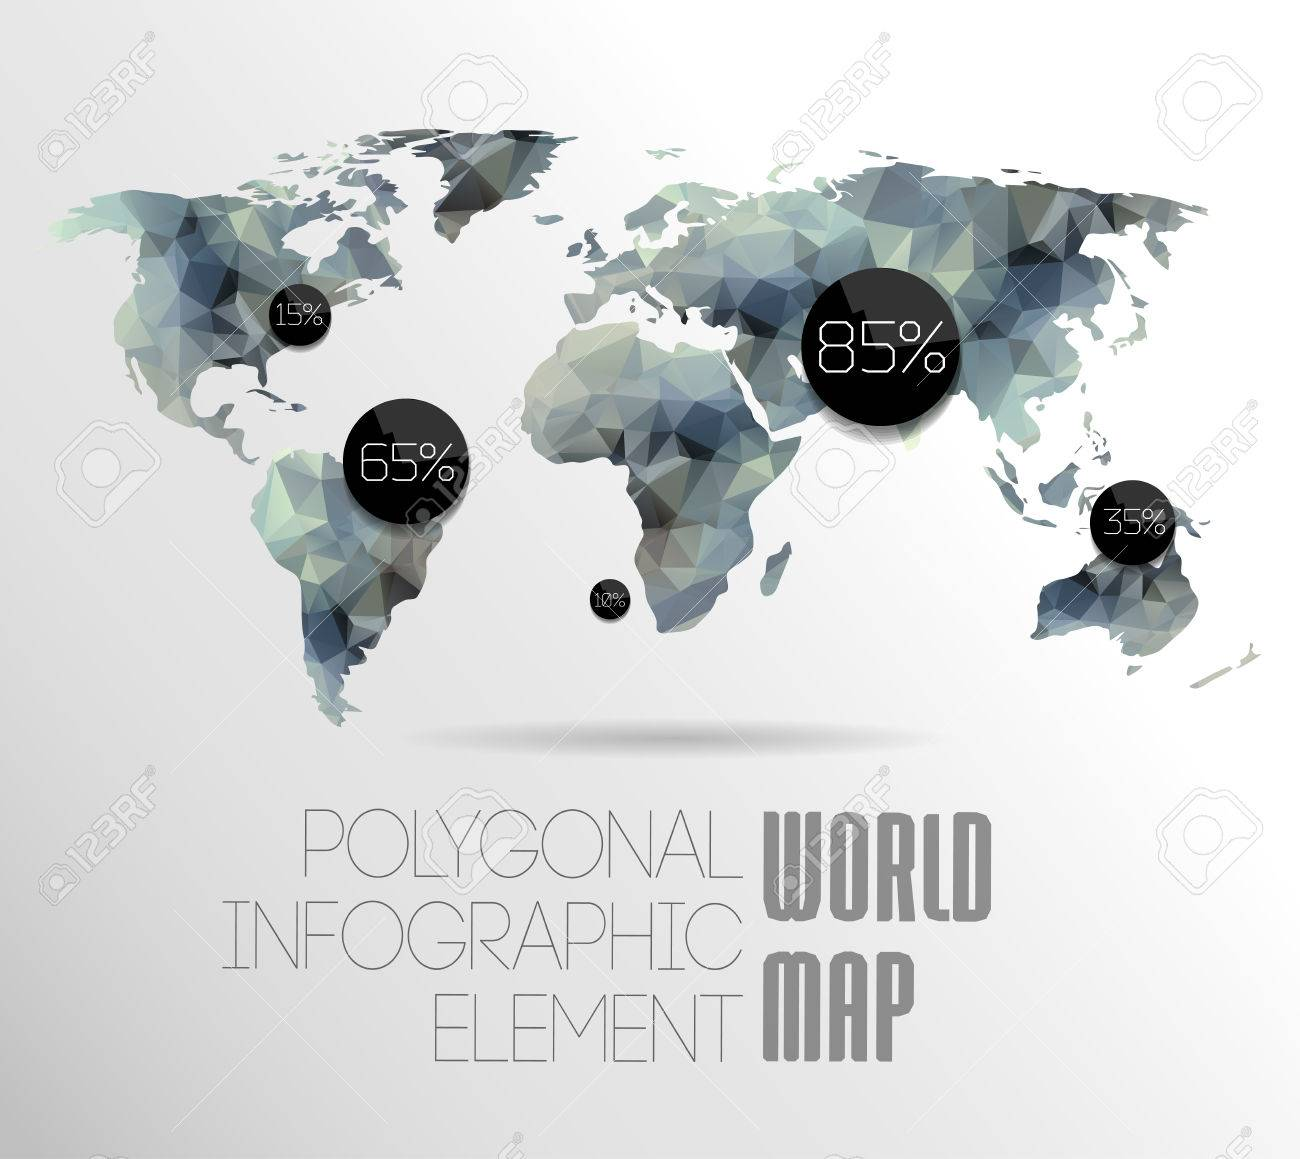 Polygonal world map and information graphics world map and polygonal world map and information graphics world map and typography stock vector 24331334 gumiabroncs Image collections